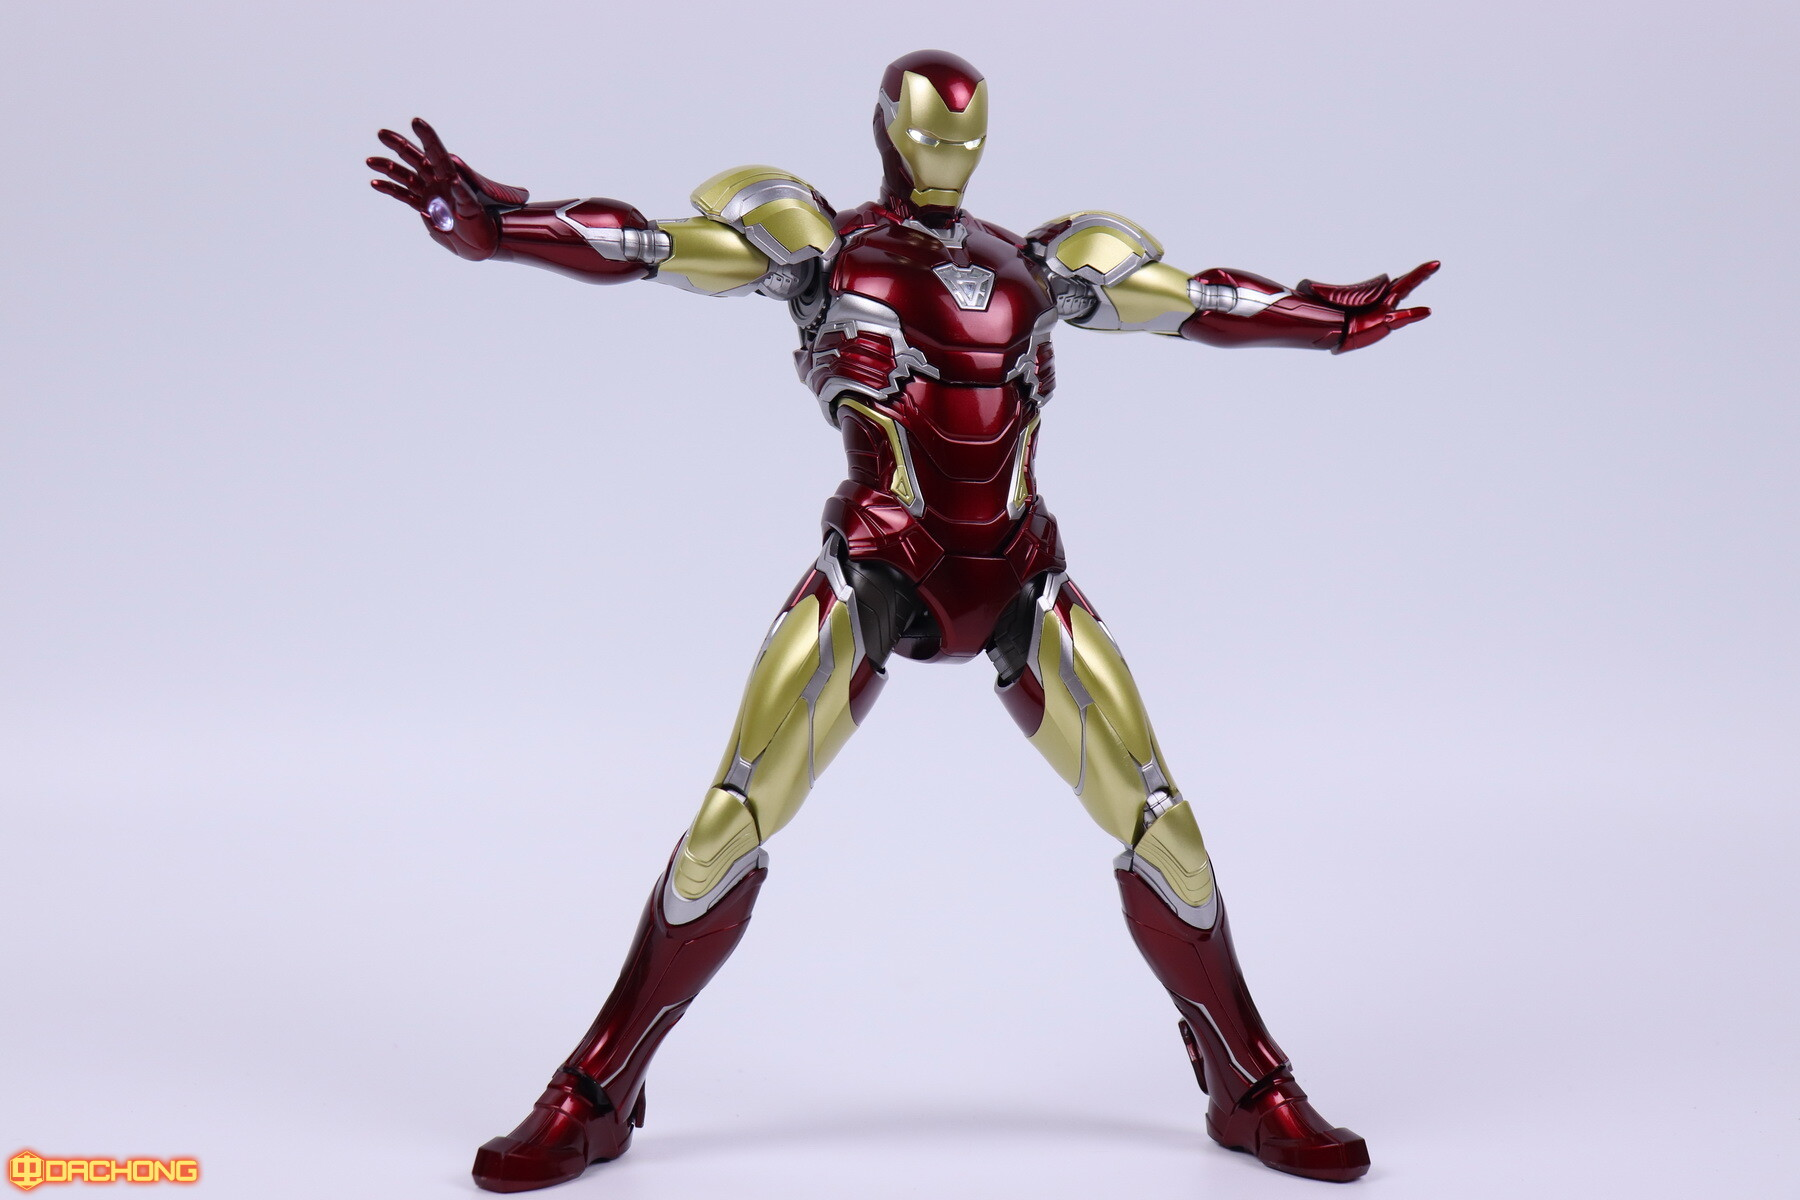 S498_2_e_model_ironman_mk85_dx_103.jpg